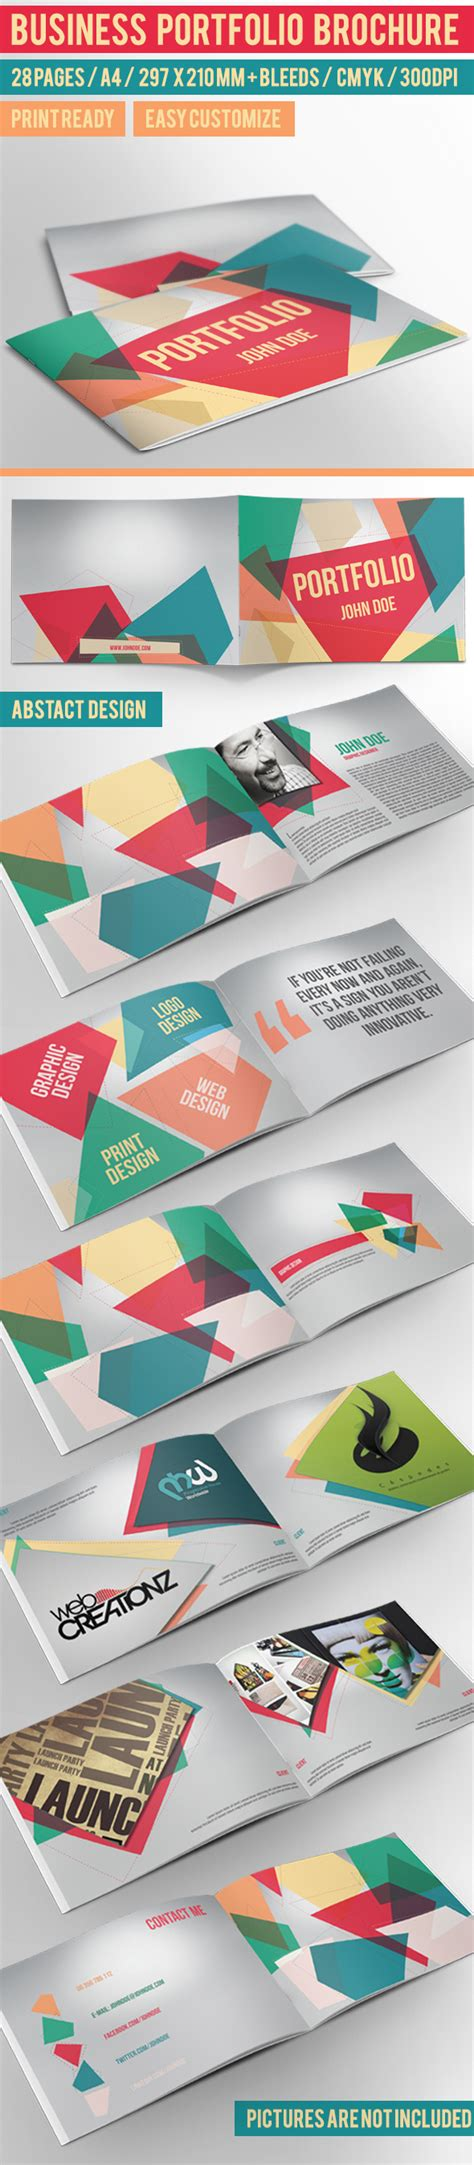 portfolio brochure template business portfolio brochure indesign template on behance